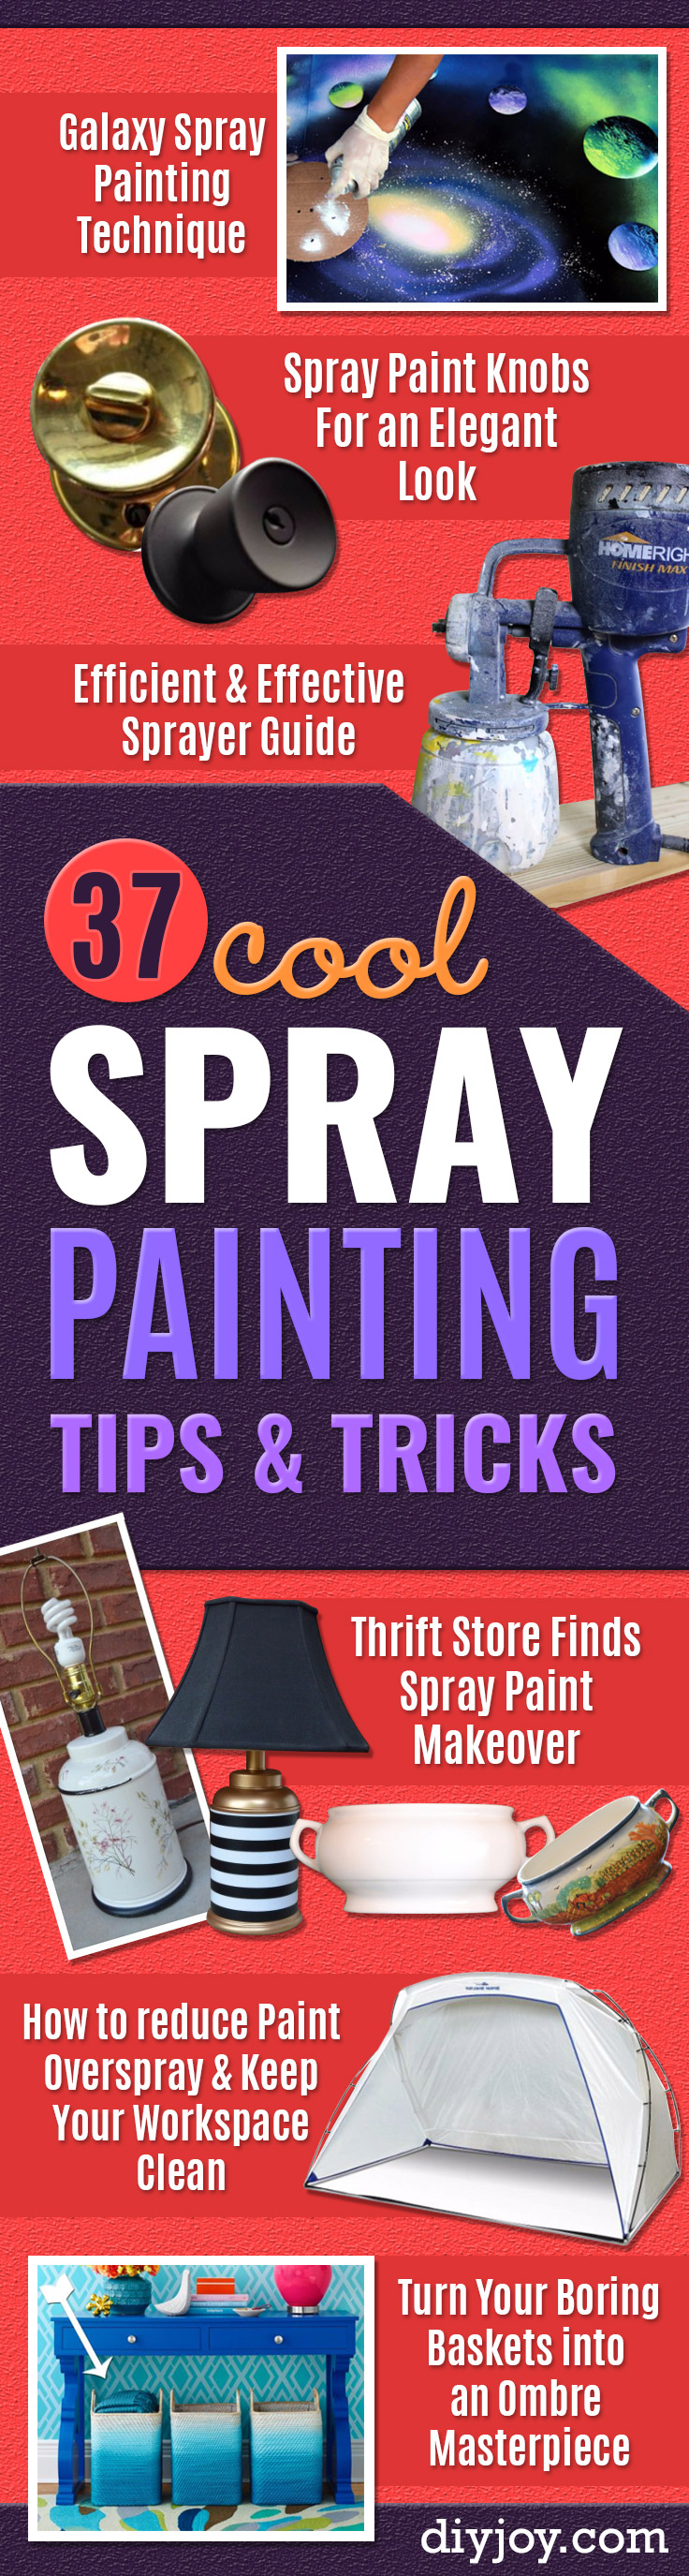 Spray Painting Tips and Tricks - Home Improvement Ideas and Tutorials for Spray Painting Furniture, House, Doors, Trim, Windows and Walls - Step by Step Tutorials and Best How To Instructions - DIY Projects and Crafts by DIY JOY http://diyjoy.com/spray-painting-tips-tricks